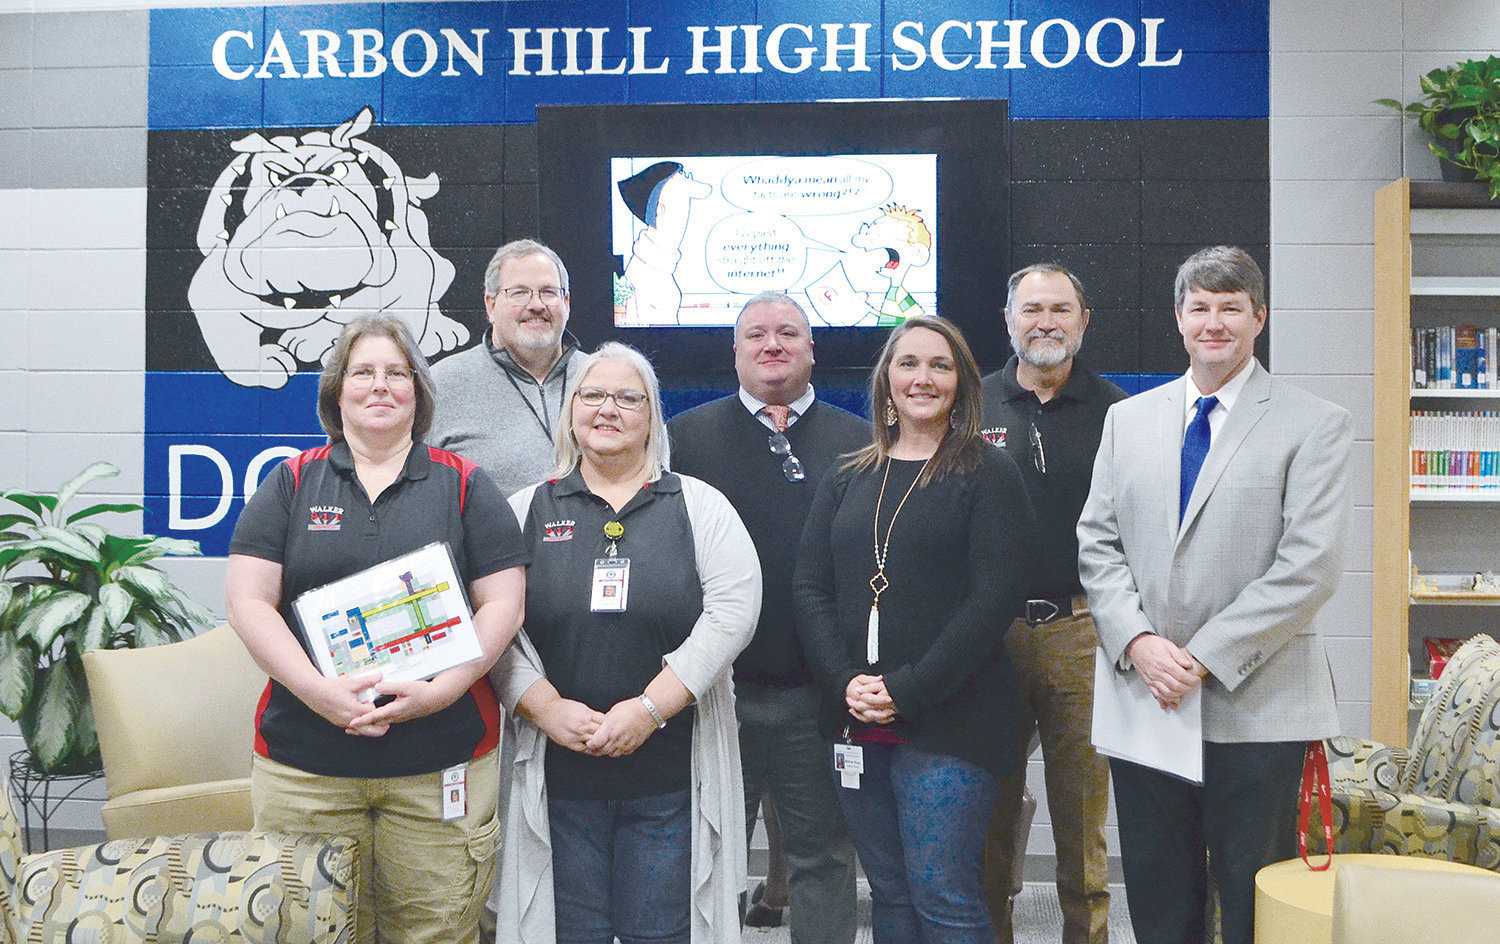 A new emergency response plan was unveiled at Carbon Hill schools last week. Pictured, from left to right, back row, is Carbon Hill Elementary/Jr. High Principal Dr. Jami Rainey, Carbon Hill High Principal Kyle Dutton and Walker County E-911 Executive Director Tim Thomas. Front row, from left to right, is Walker County E-911 employees Crystal Hill and Sherrea Chamness, Carbon Hill Elementary/Jr. High Assistant Principal Melinda Boots and Carbon Hill High School Assistant Principal Chris Harris.